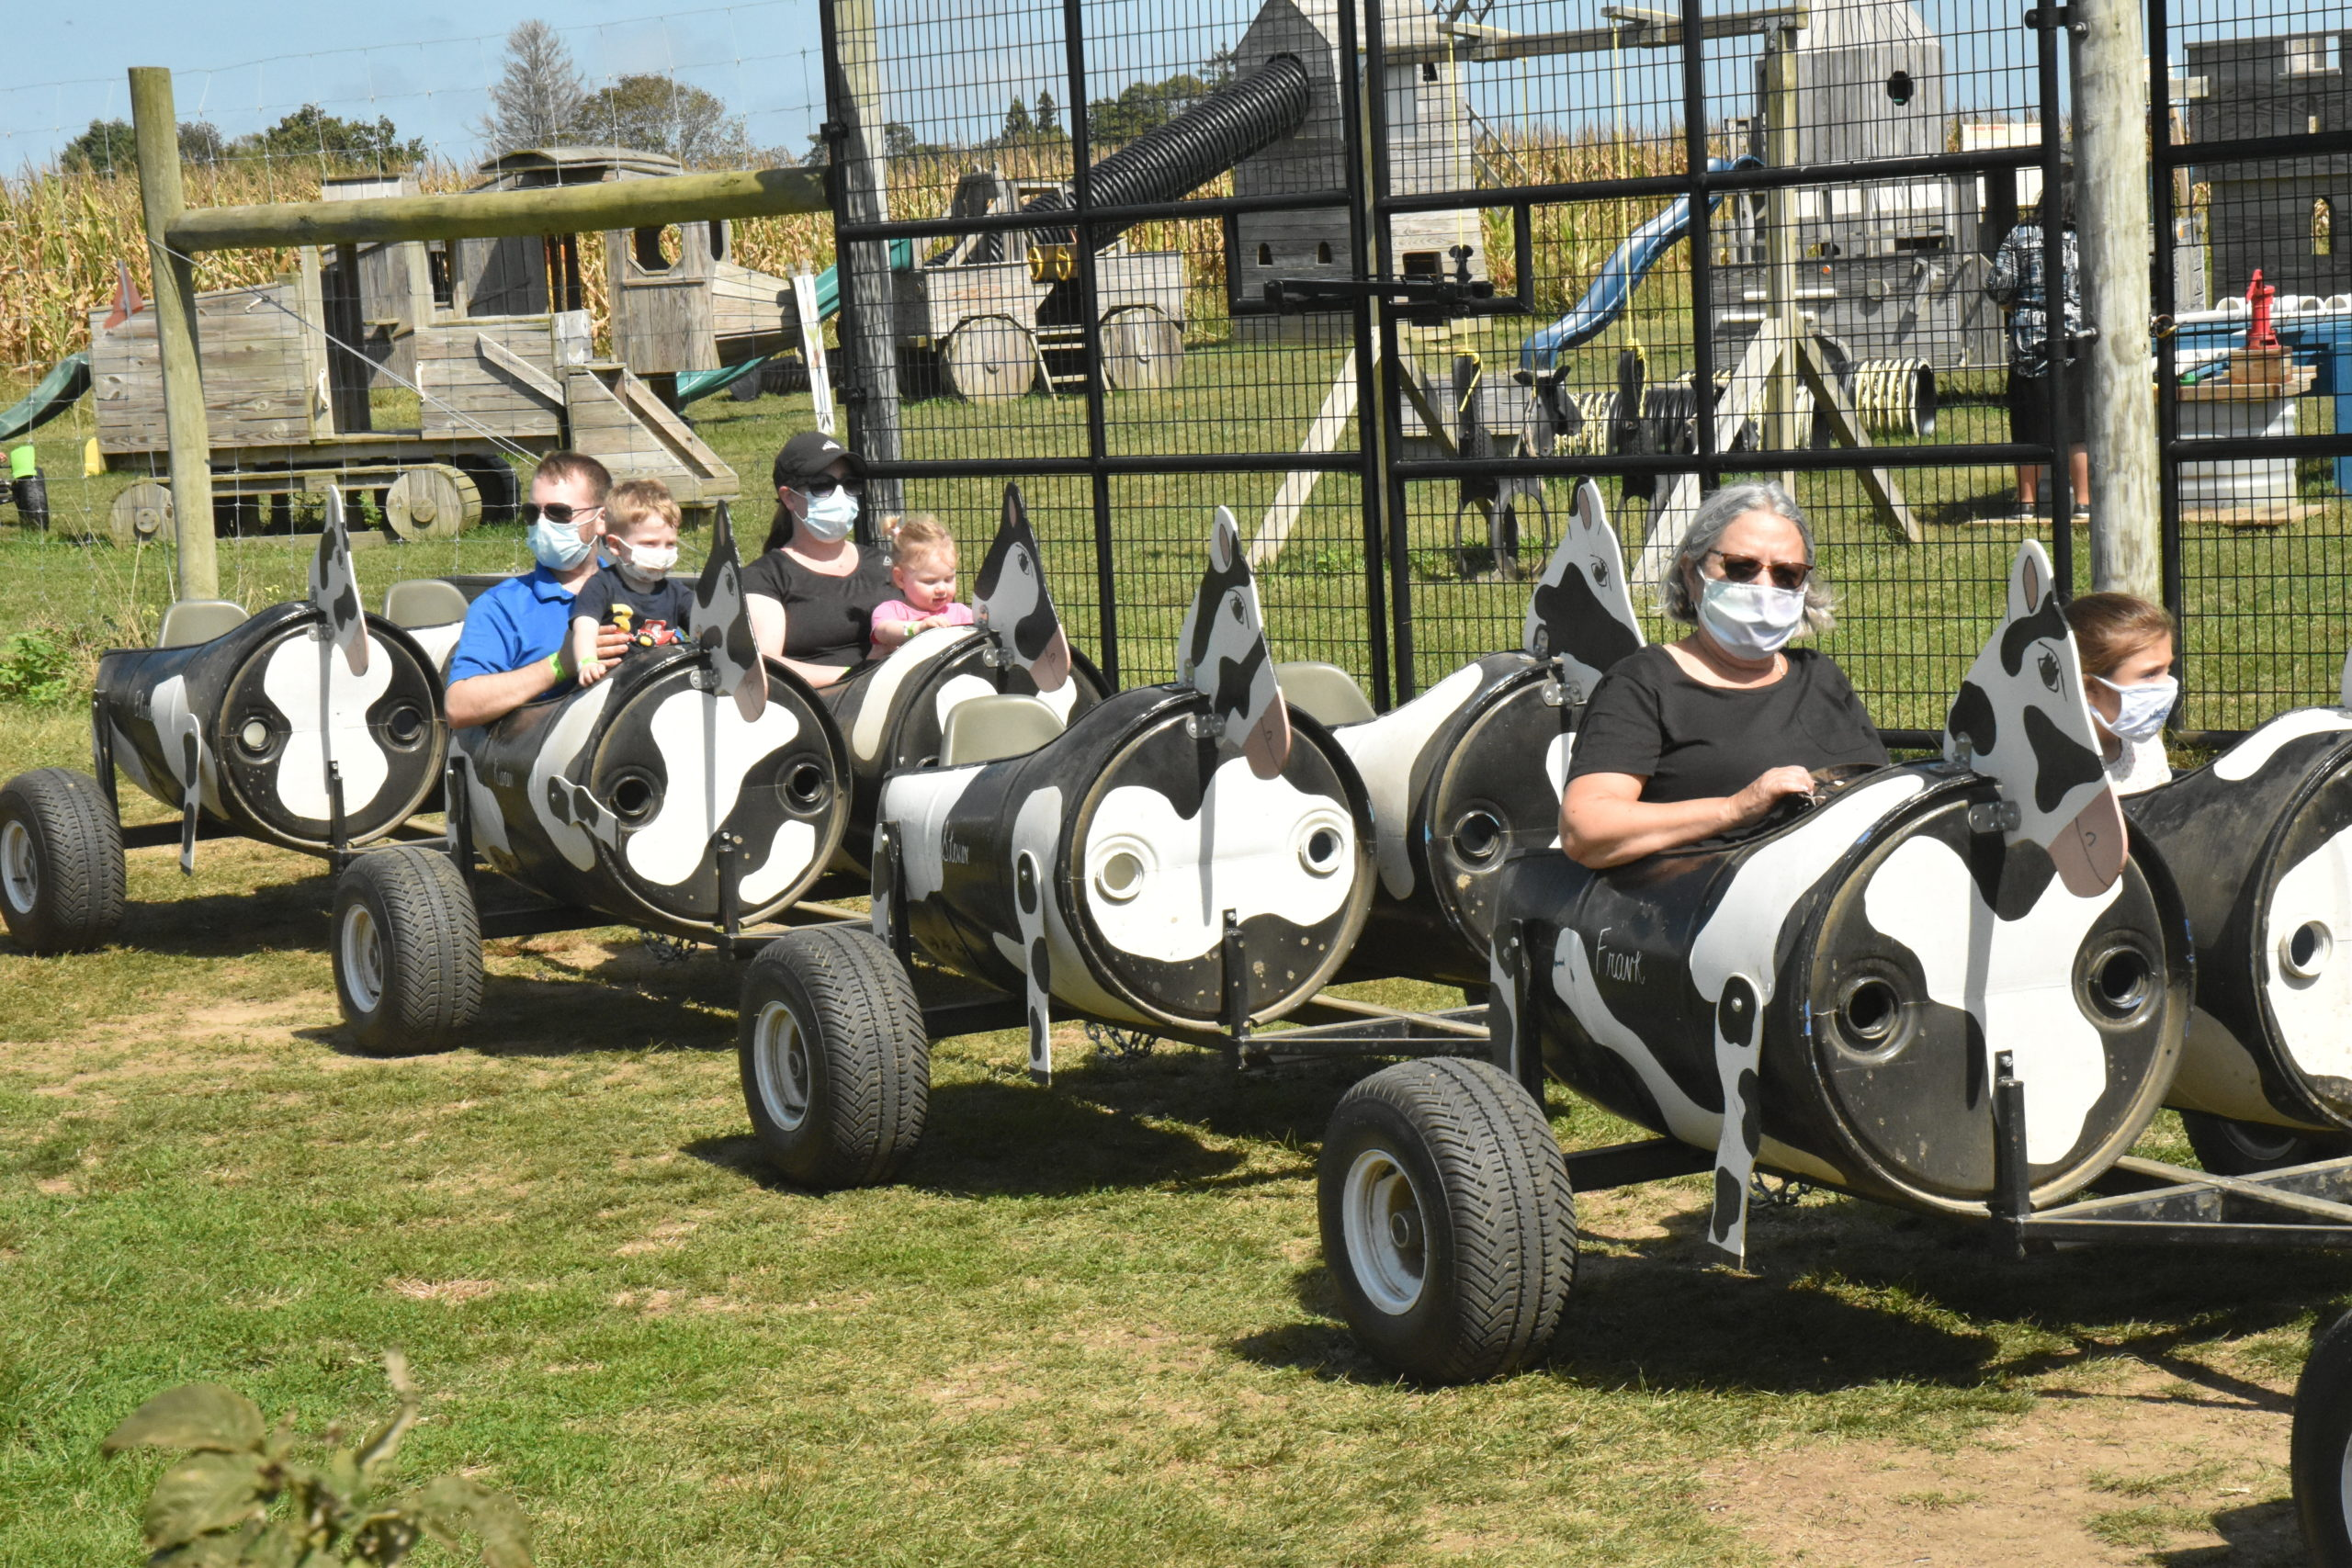 Riders on the cow train get a tour of Seven Ponds Orchard in Water Mill on Sunday. STEPHEN J. KOTZ